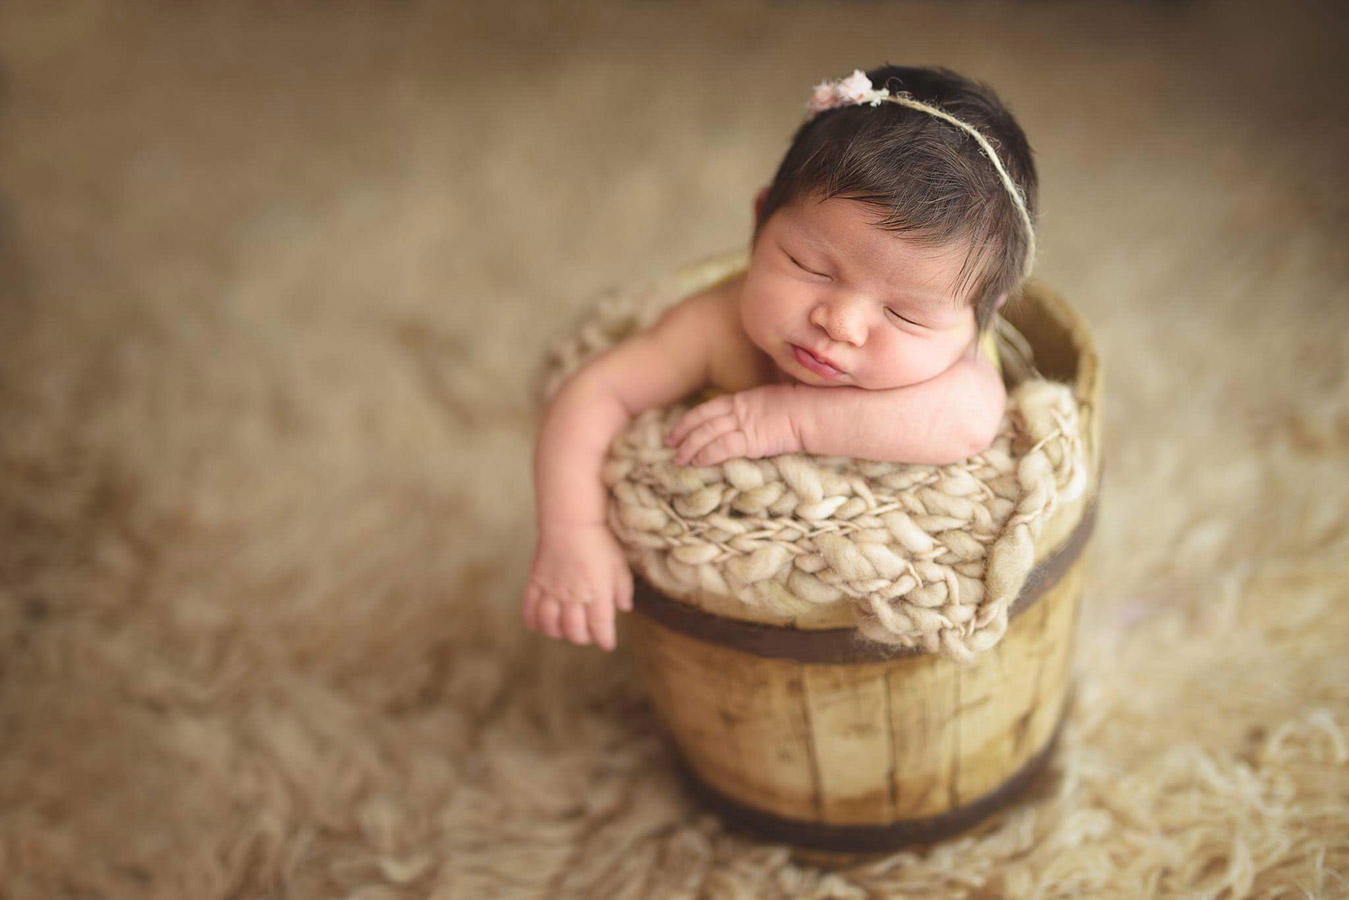 Sweet Leah, © Andreea Velican, Romania, Newborns Photo Contest